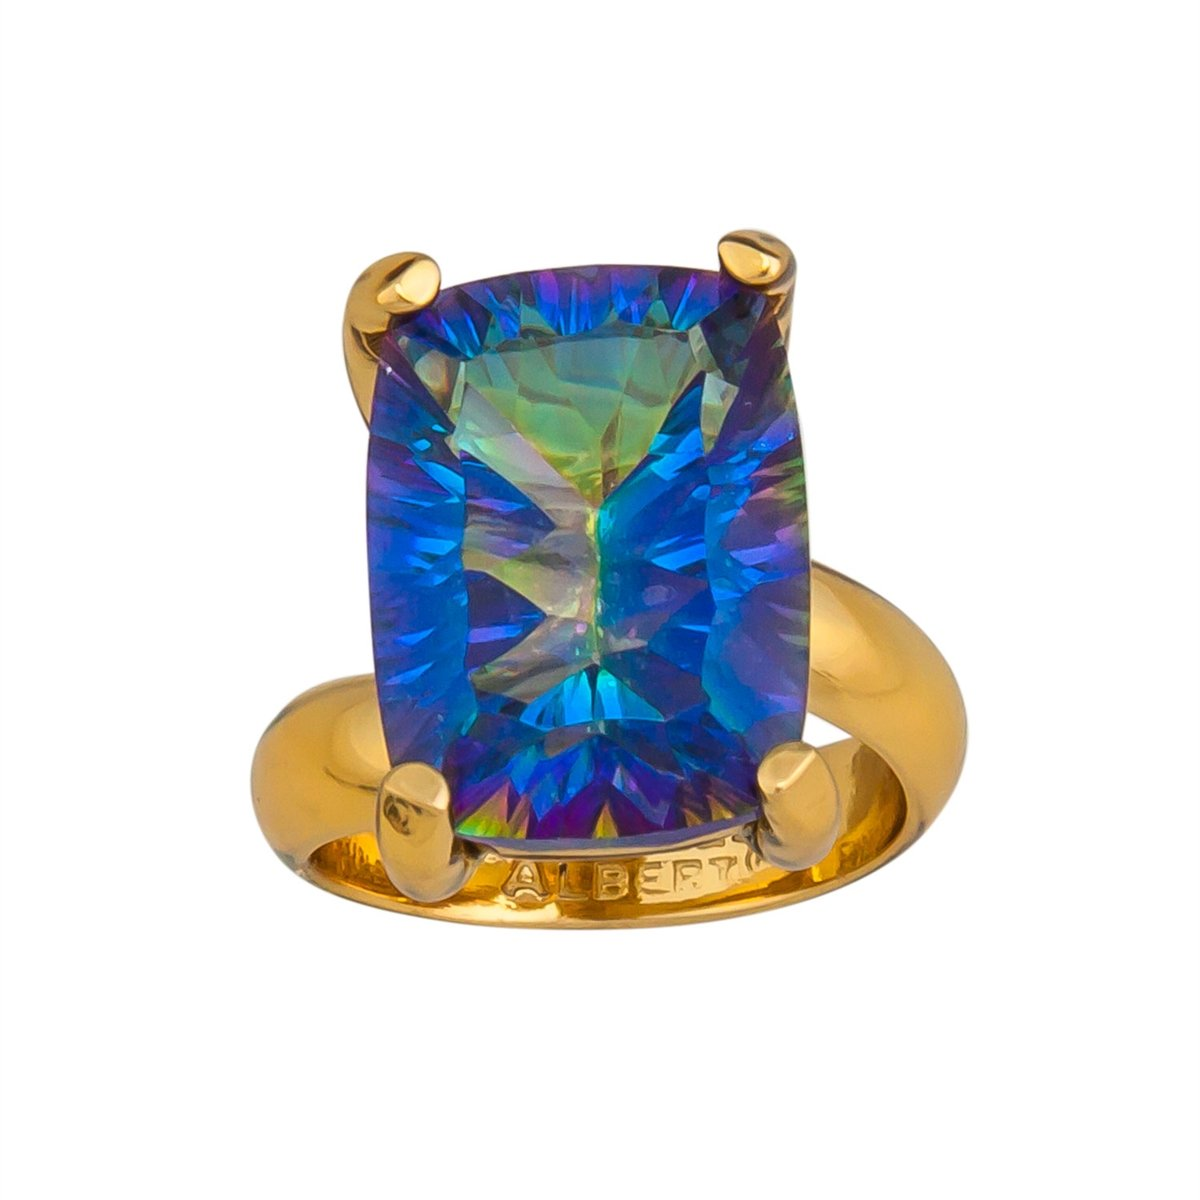 alchemia-mystic-quartz-prong-set-adjustable-ring - 1 - Charles Albert Inc